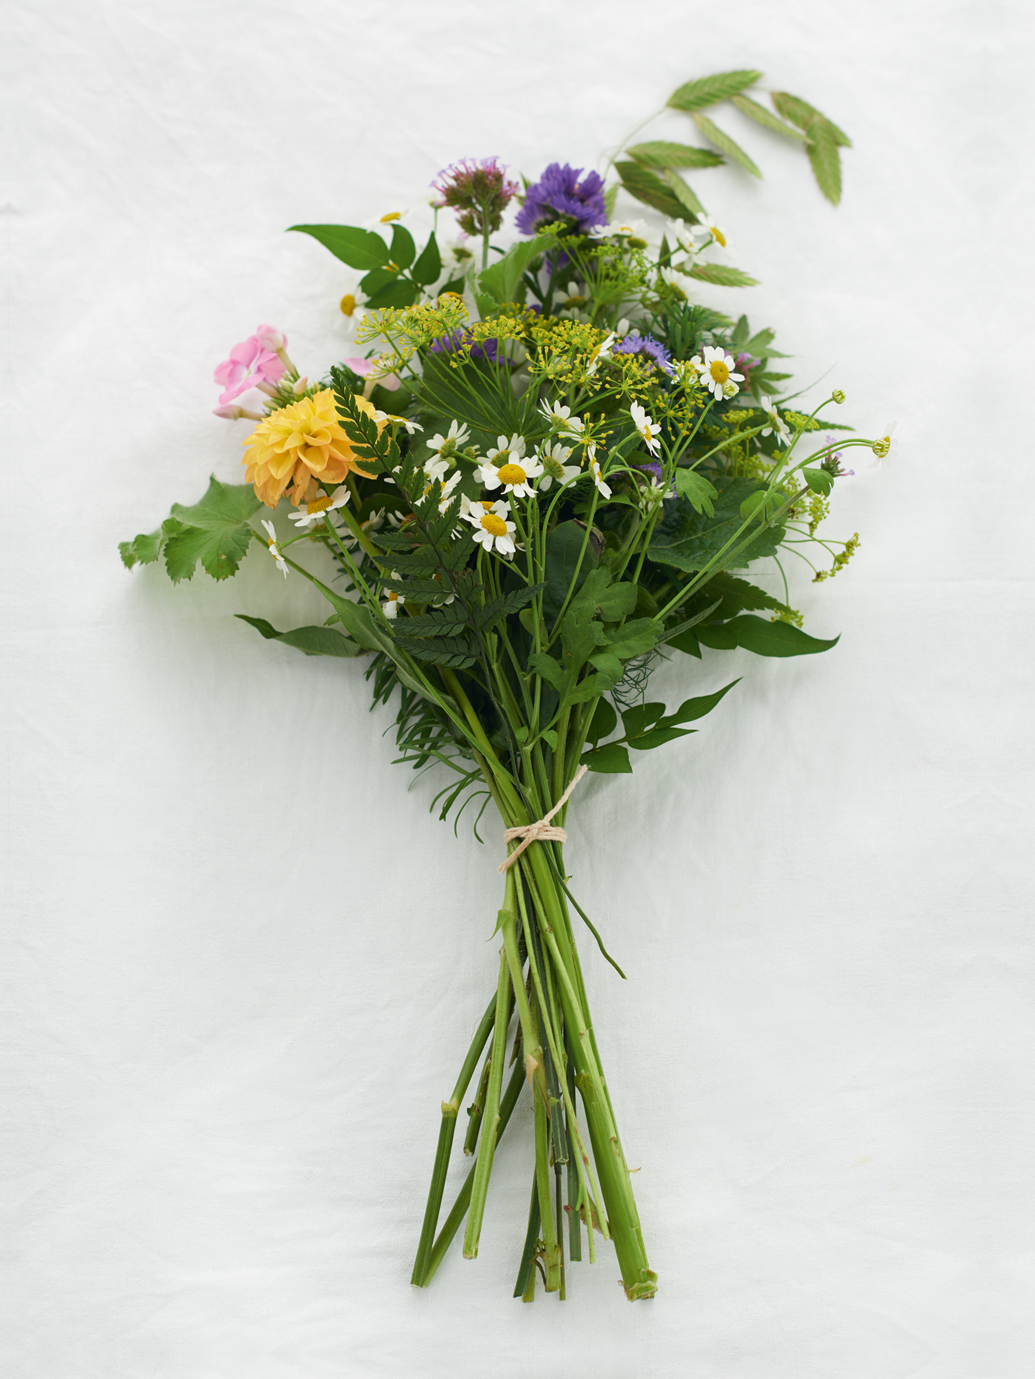 Show you care with a foraged bunch of flowers for a neighbour or family member during isolation.